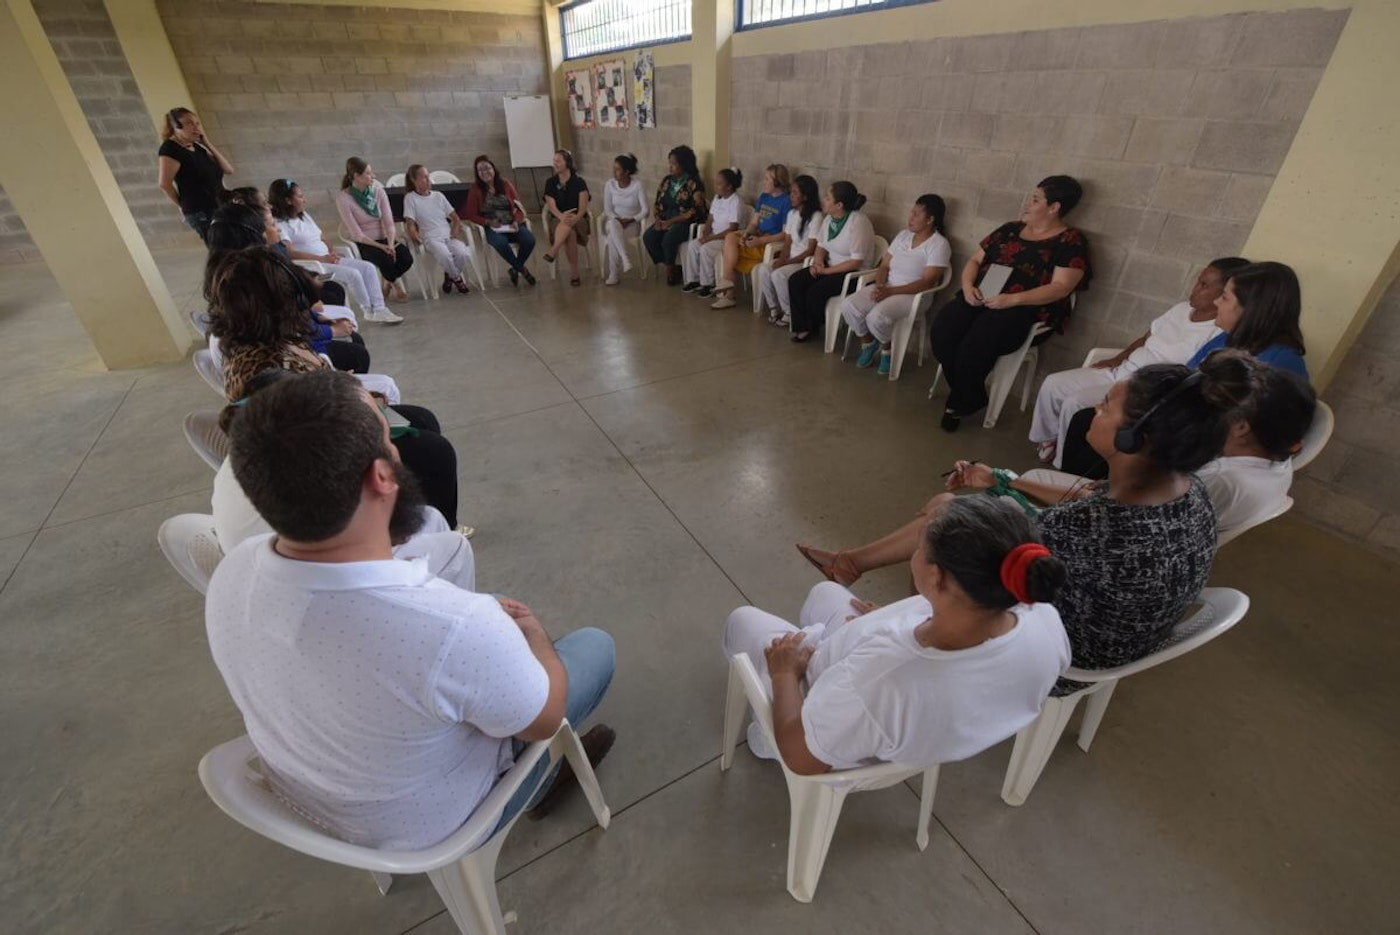 Rep. Raquel Teran (seated against the wall, dressed in black and red) listening to 13 women imprisoned in El Salvador, where abortion is completely criminalized. Photo via Menly Cortez for State Innovation Exchange